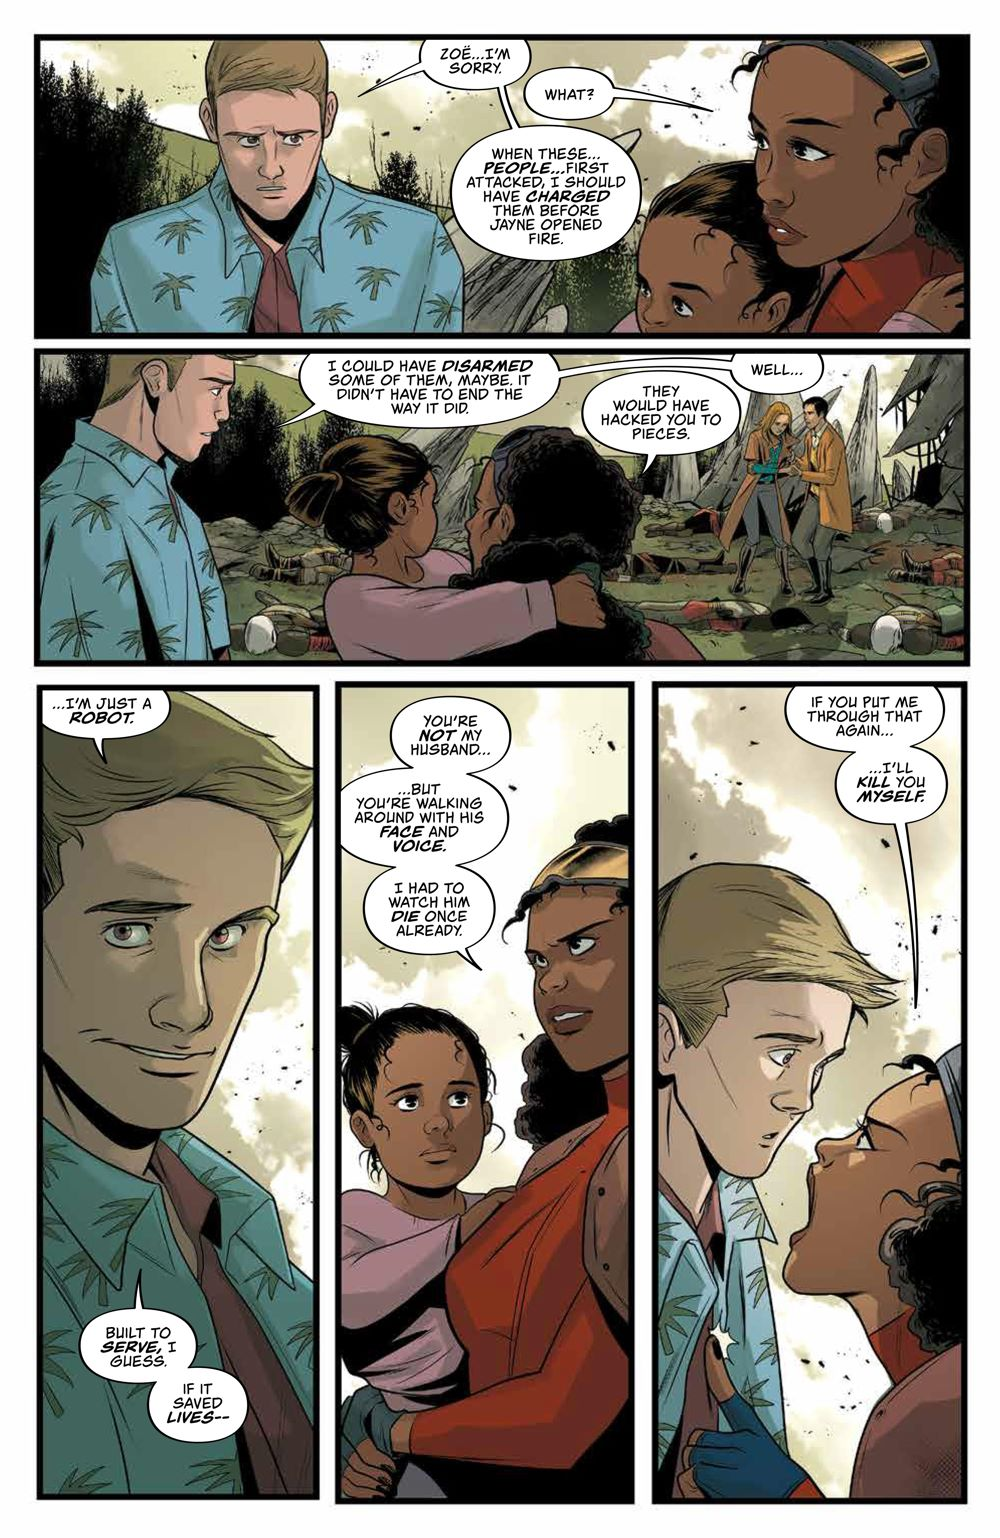 Firefly_029_PRESS_4 ComicList Previews: FIREFLY #29